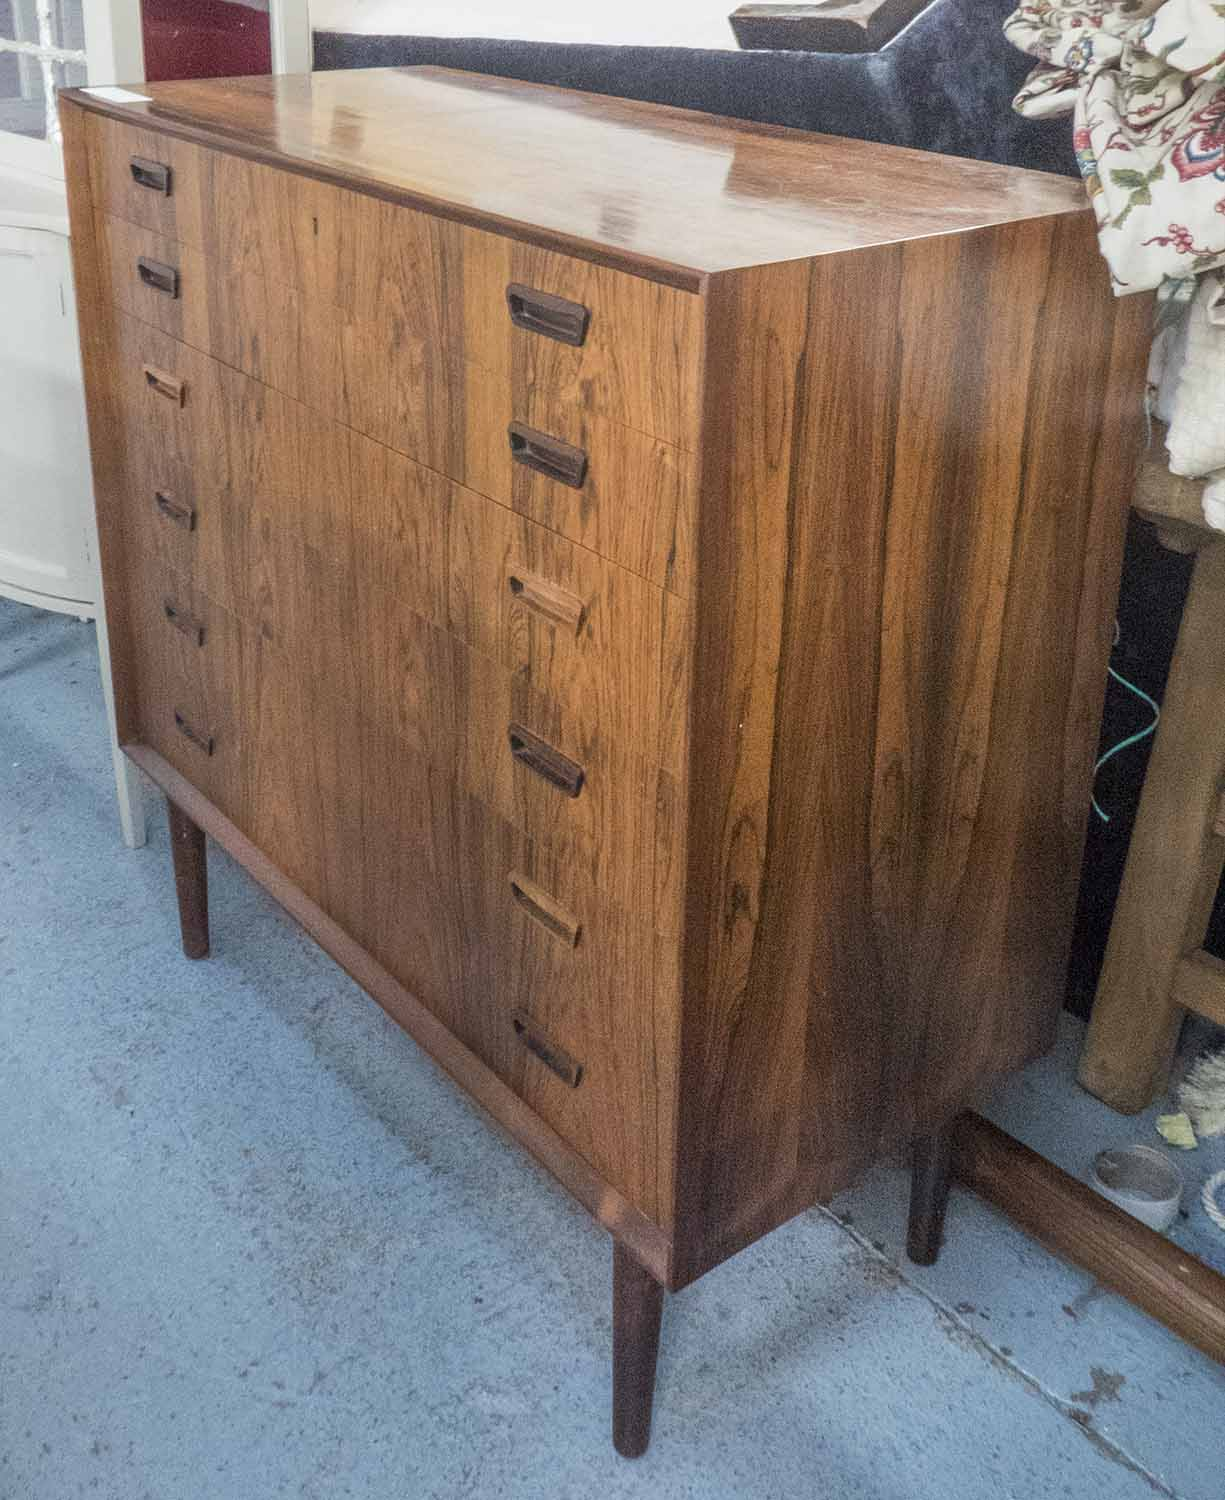 Lot 28 - CHEST, mid 20th century, rosewood with six drawers, 100cm W x 45cm D x 103cm H.